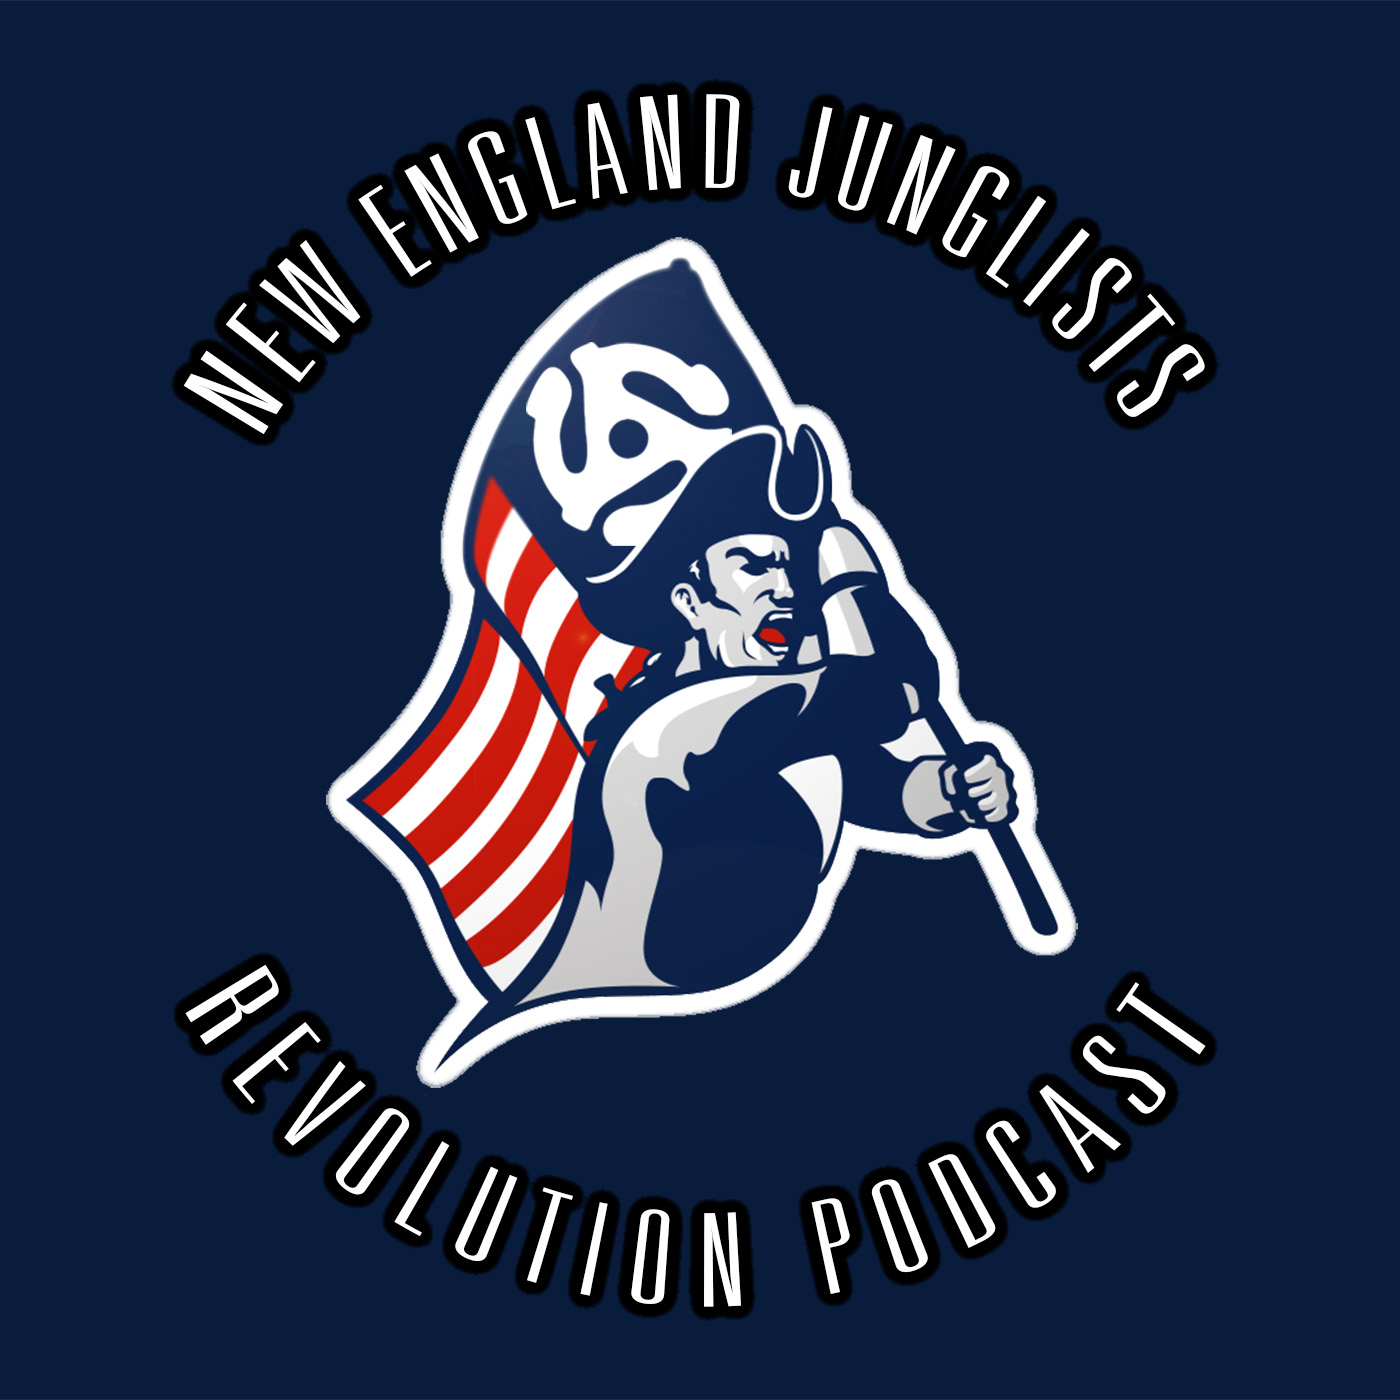 New England Junglists REVOLUTION Podcast